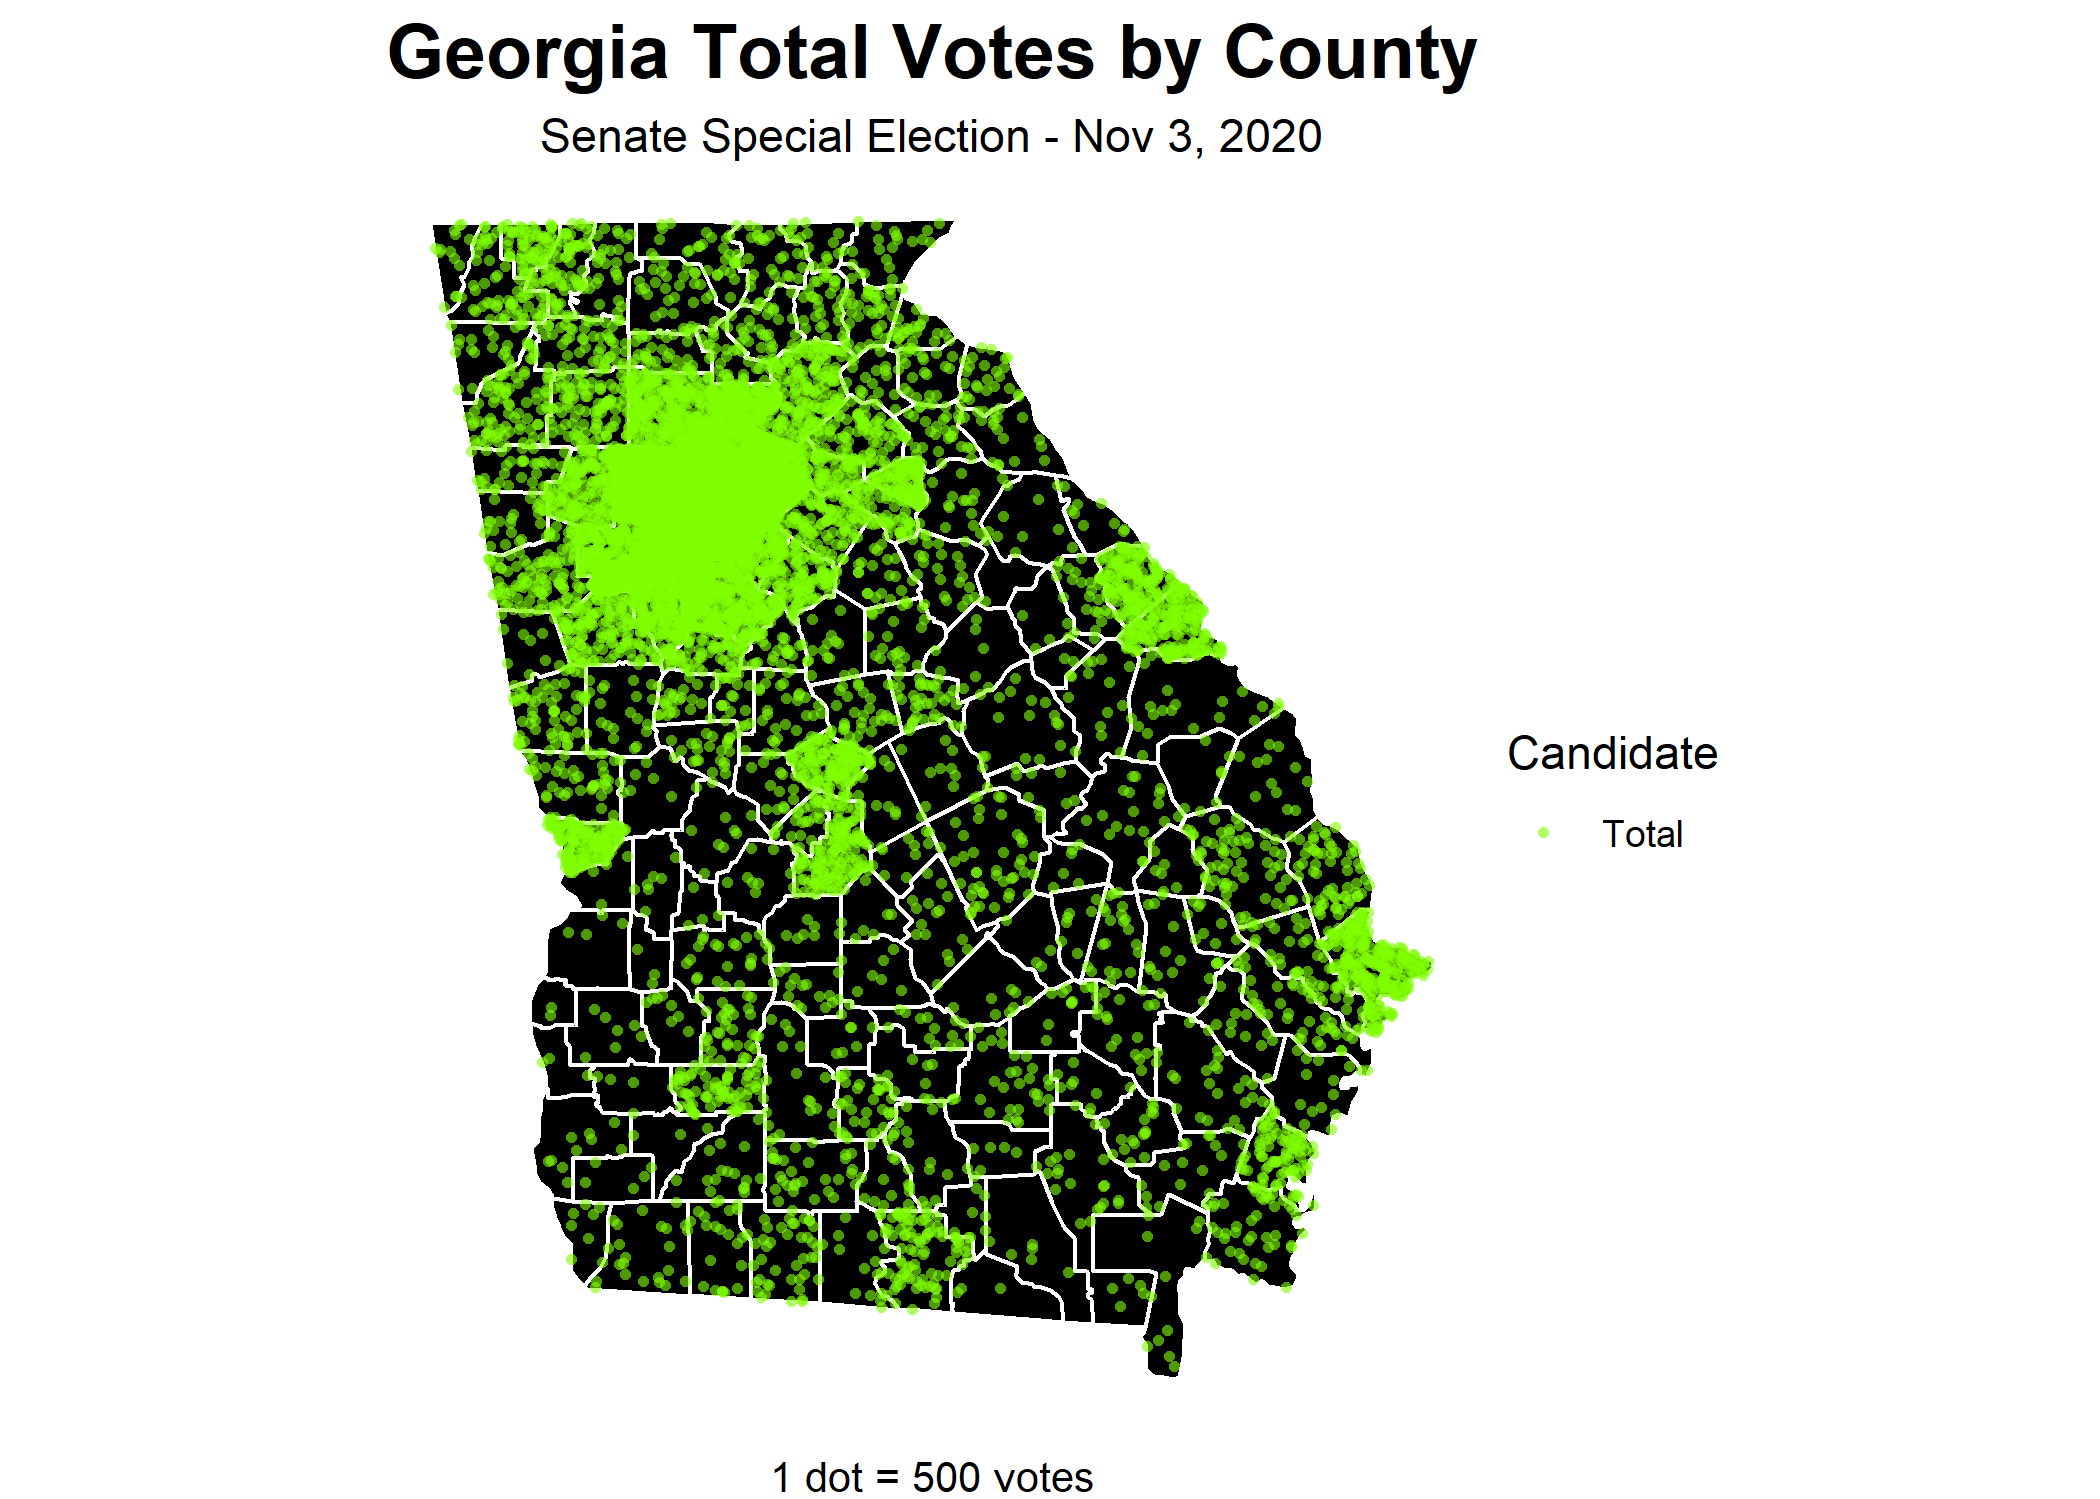 Georgia's total votes by county in the 3 Nov 2020 Senate Special Election — 1 dot equals 500 votes